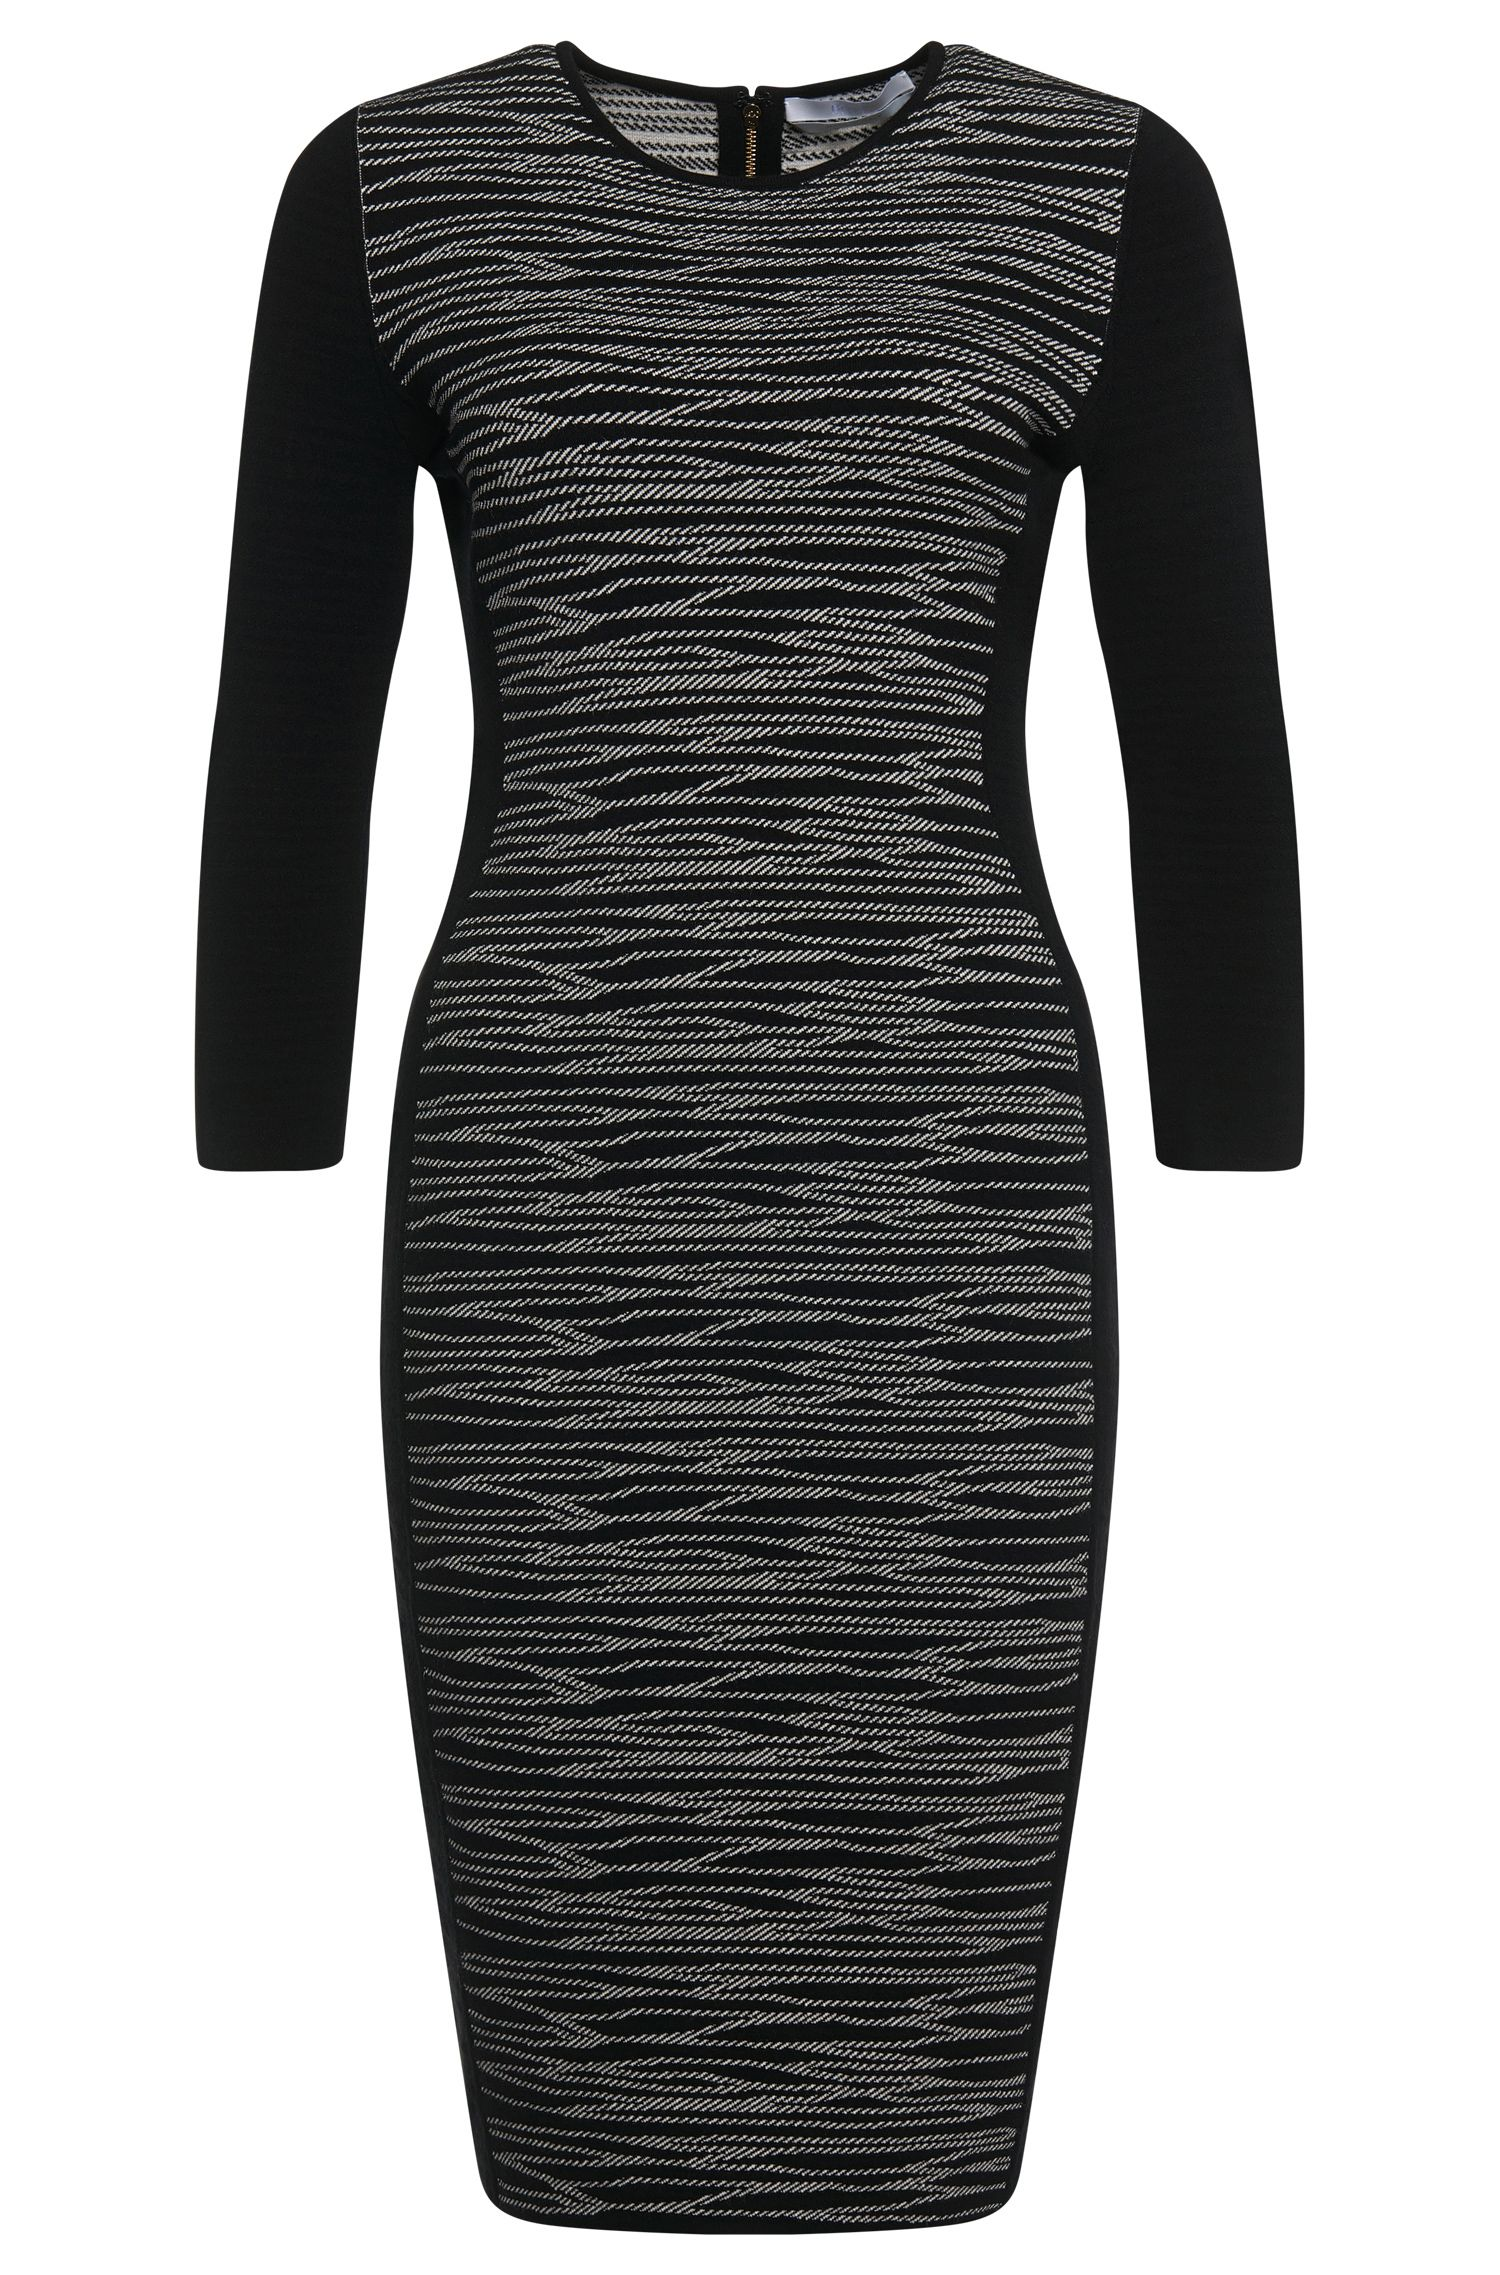 'Femilia' | Knit Jacquard Sheath Dress